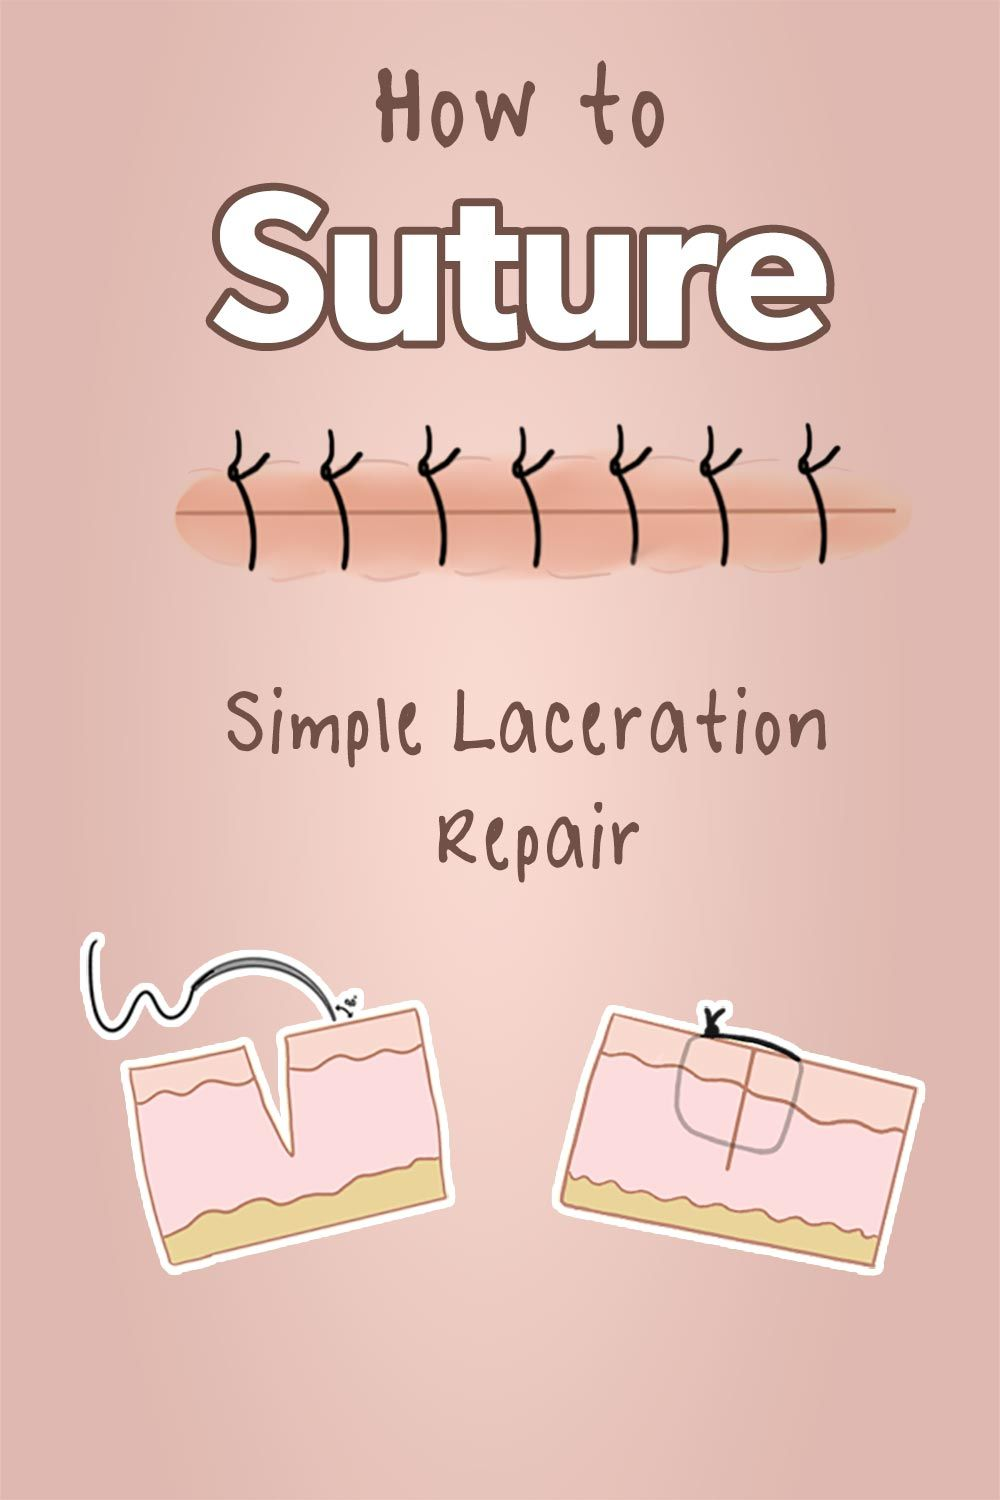 How To Suture Simple Laceration Repair Nursing Notes Sutures Fundamentals Of Nursing